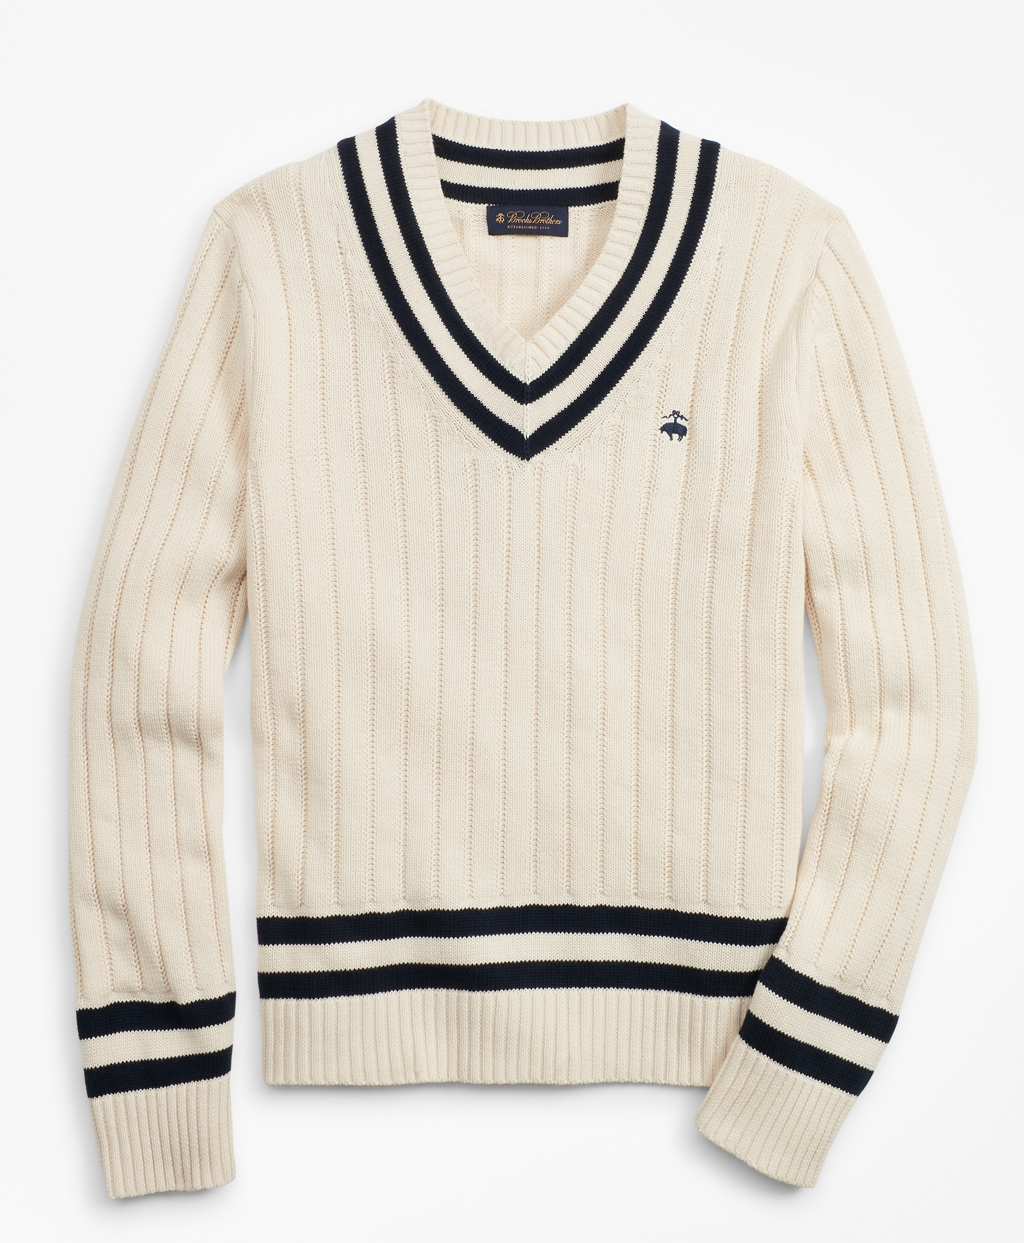 1920s Mens Sweaters, Pullovers, Cardigans Brooks Brothers Mens Tennis V-Neck Sweater $98.50 AT vintagedancer.com